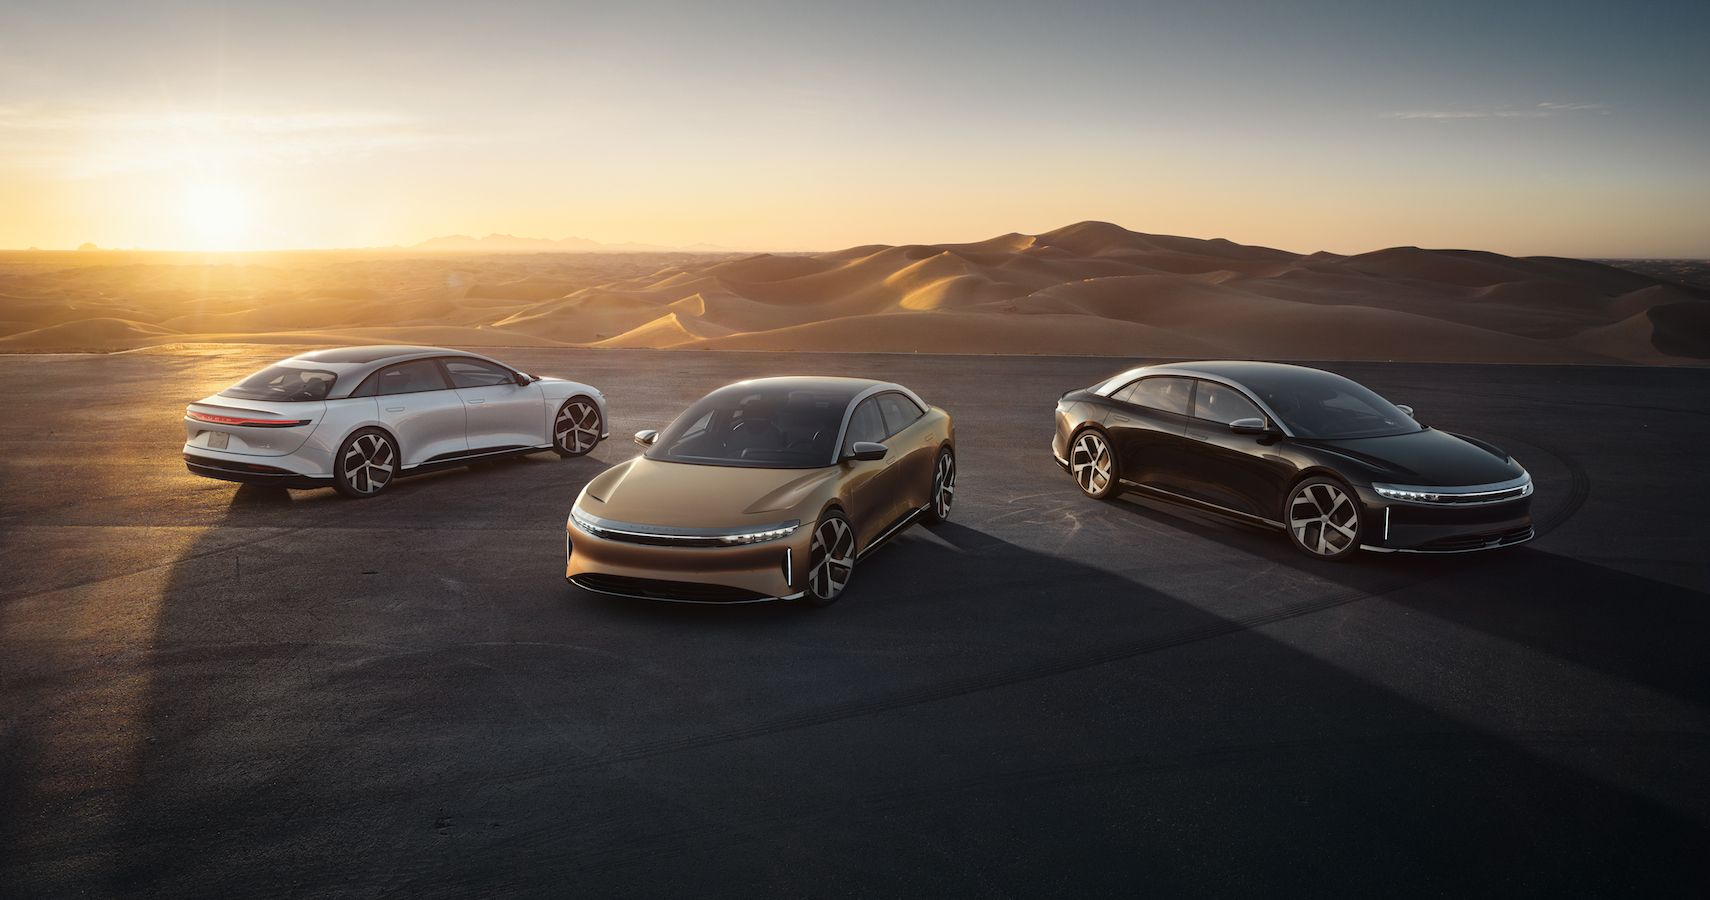 Lucid Motors Takes On Porsche And Tesla With Air Luxury Sedan EV